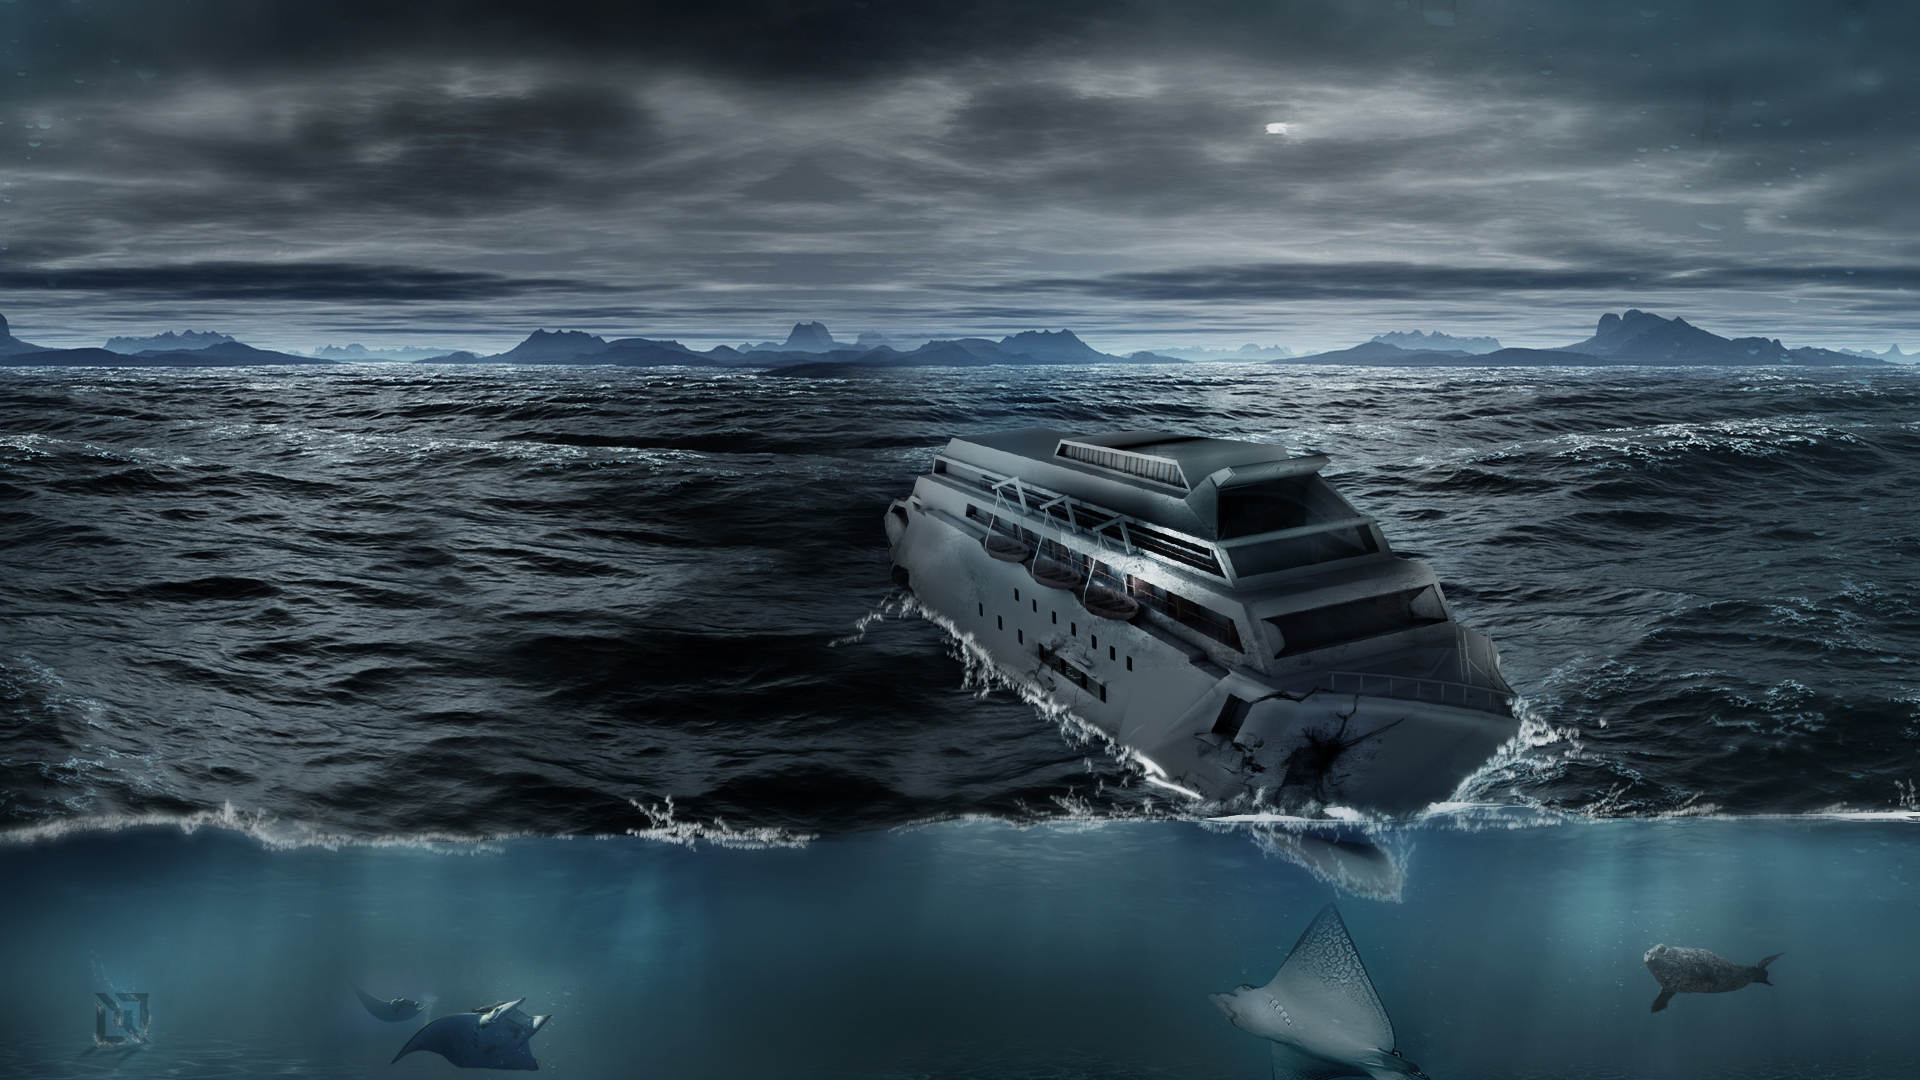 The Arts Above - Sinking Ship by TheArtsAbove on DeviantArt